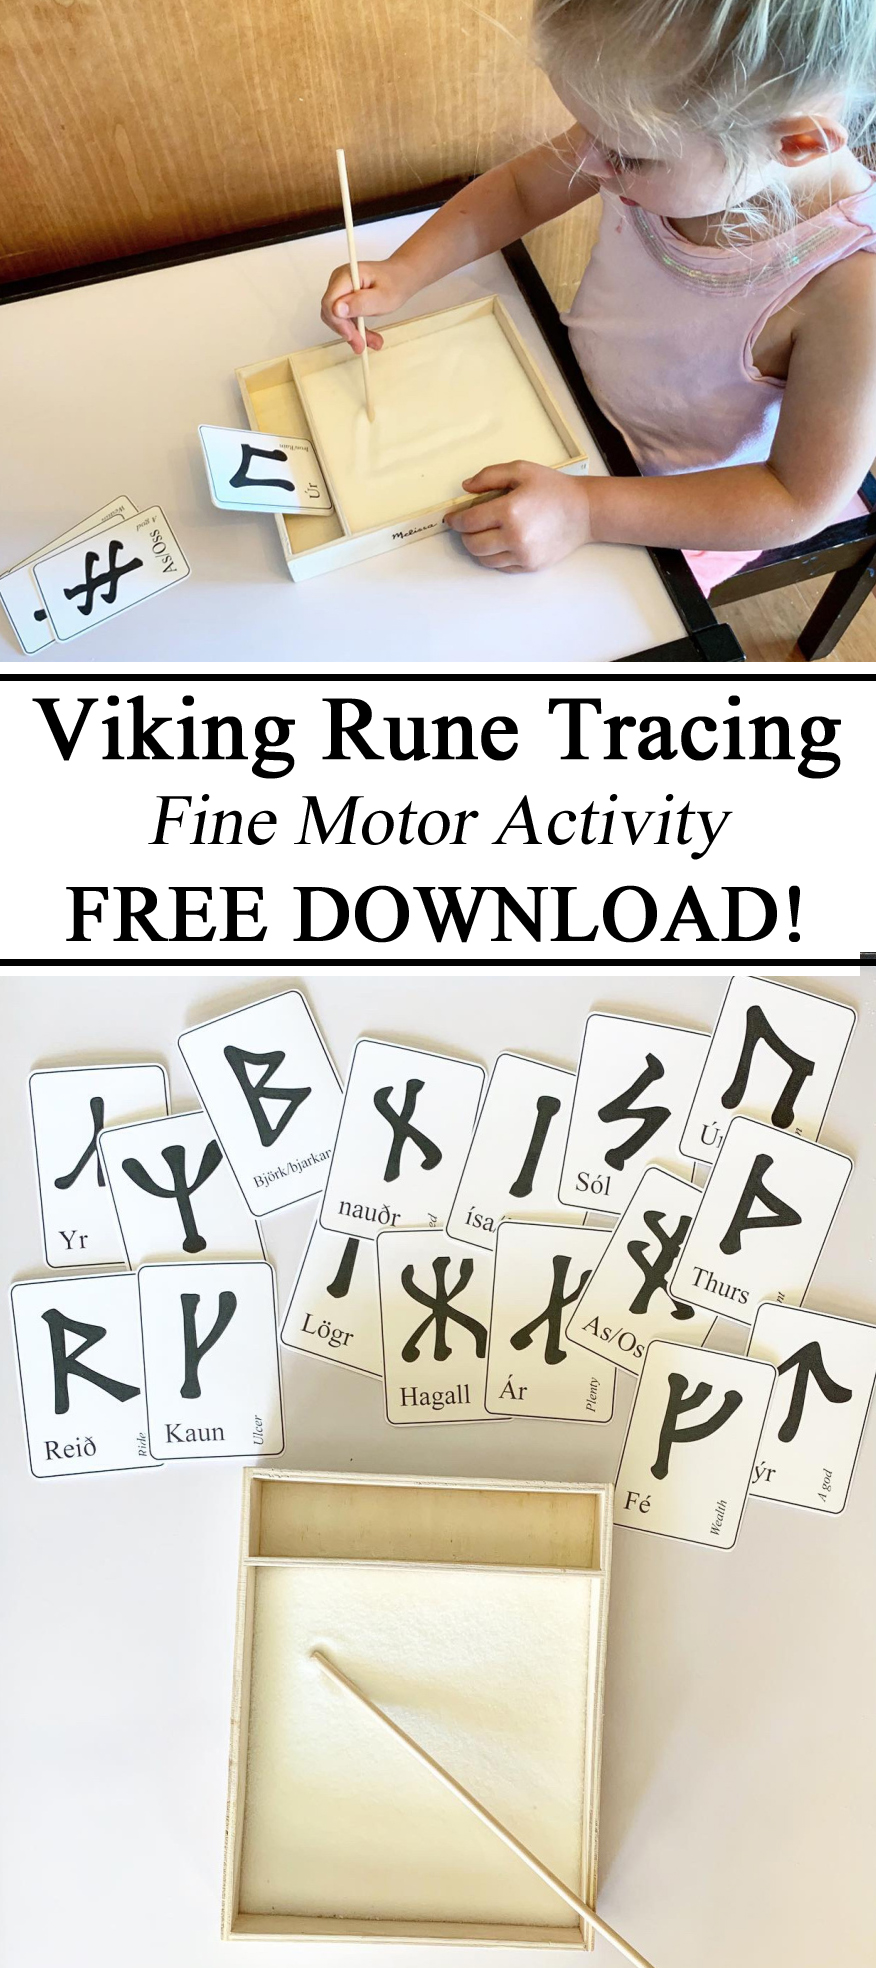 Viking Rune Runes Iceland Icelandic Tracing Early Writing Skills Activity Activities Free Printables Download Resources, Hands on Learning, Younger Futhark, Learning Languages, #travelingthroughlearning, Early Childhood Education, Preschool, PreK, Kindergarten, Tracing Sand, Learning to Write, Homeschool, Homeschooling